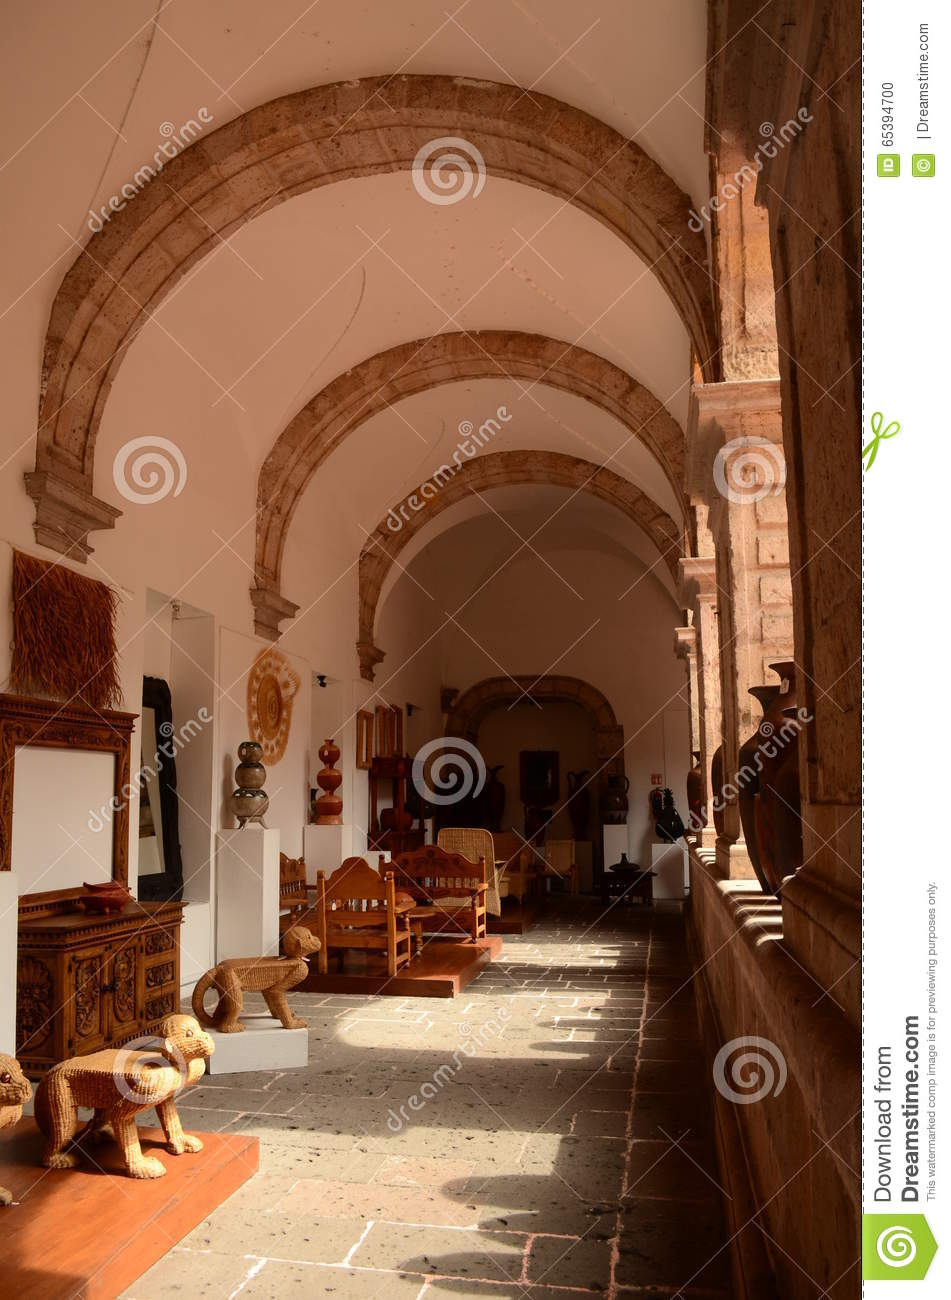 Corridor in the house of the Crafts at Morelia